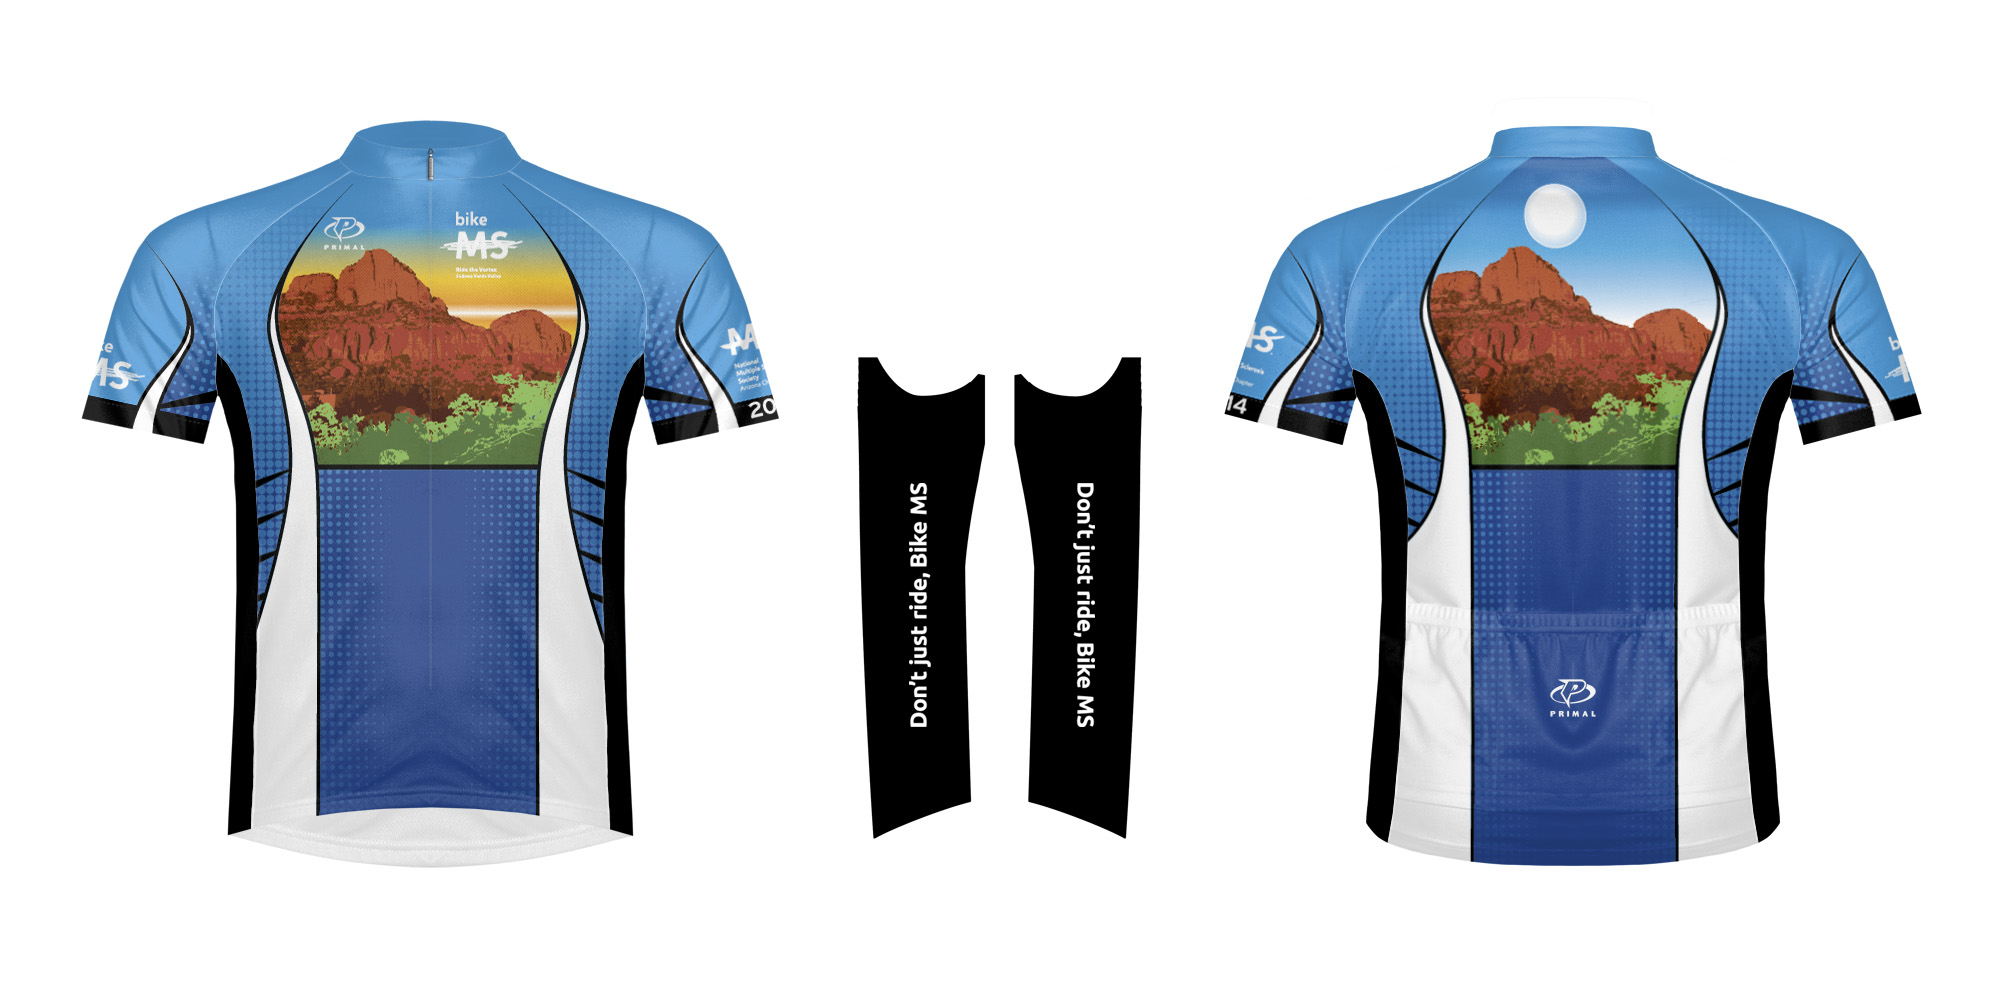 AZA Bike MS 500 Jersey